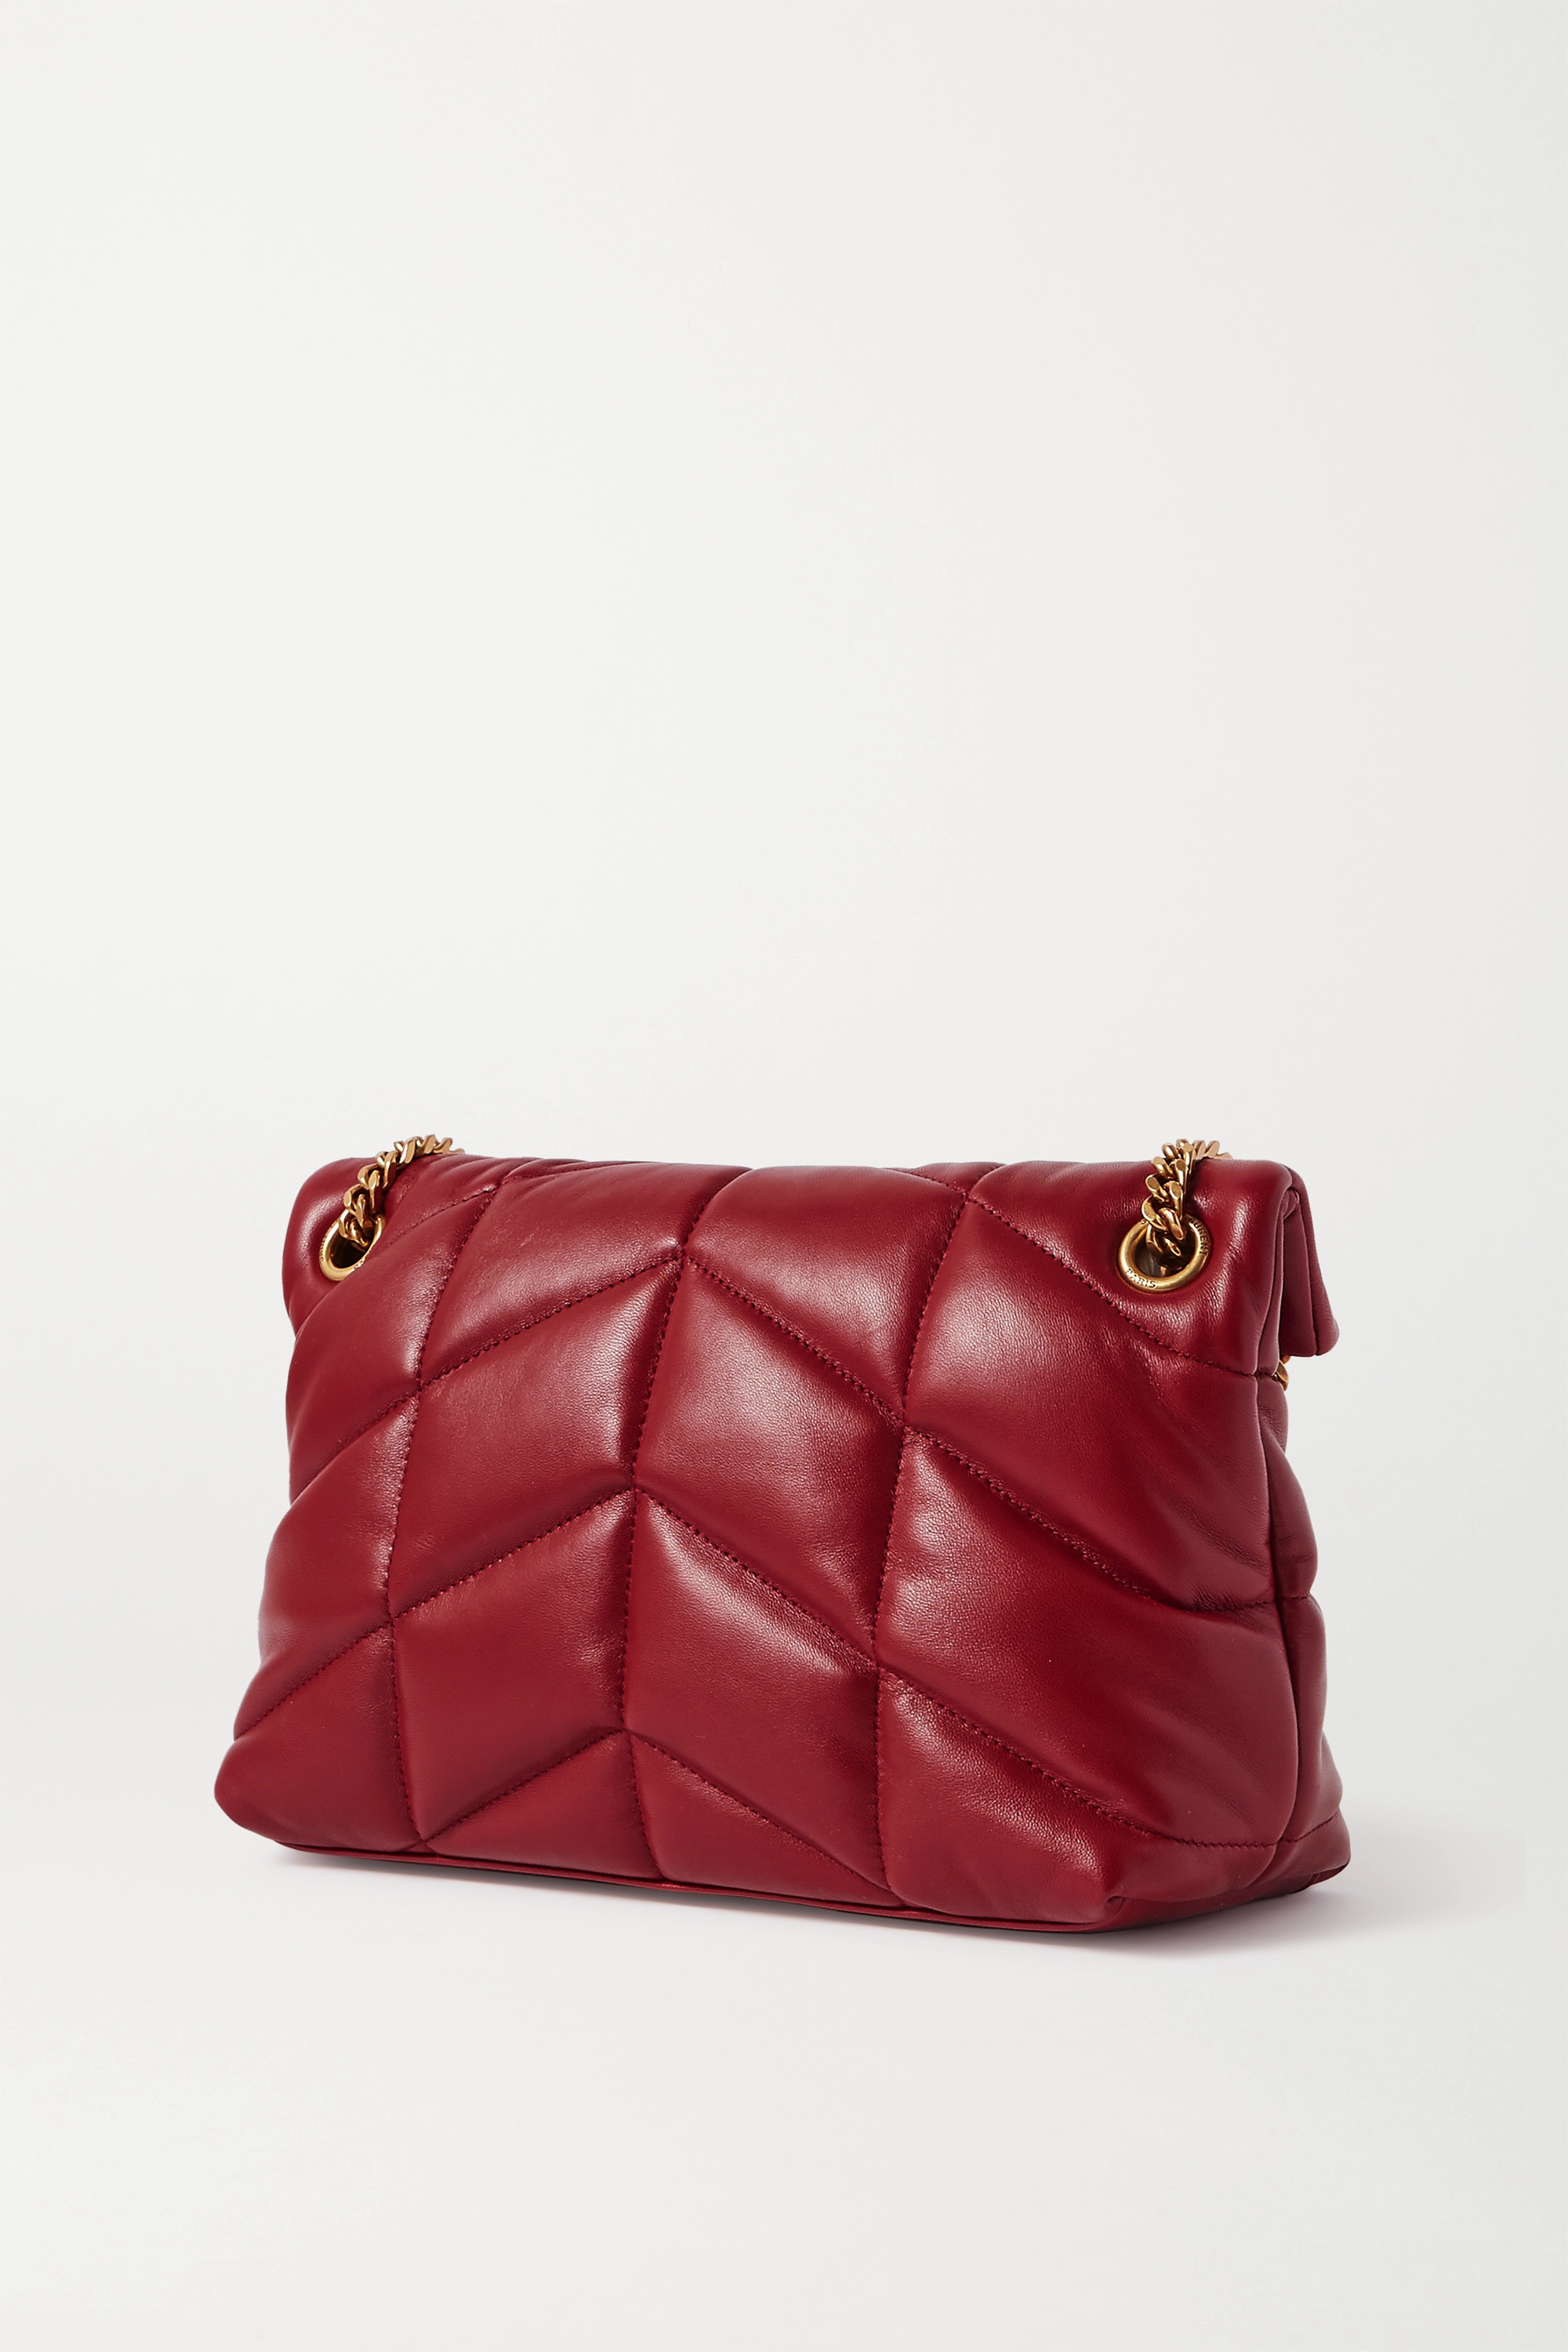 SAINT LAURENT Loulou Puffer small quilted leather shoulder bag